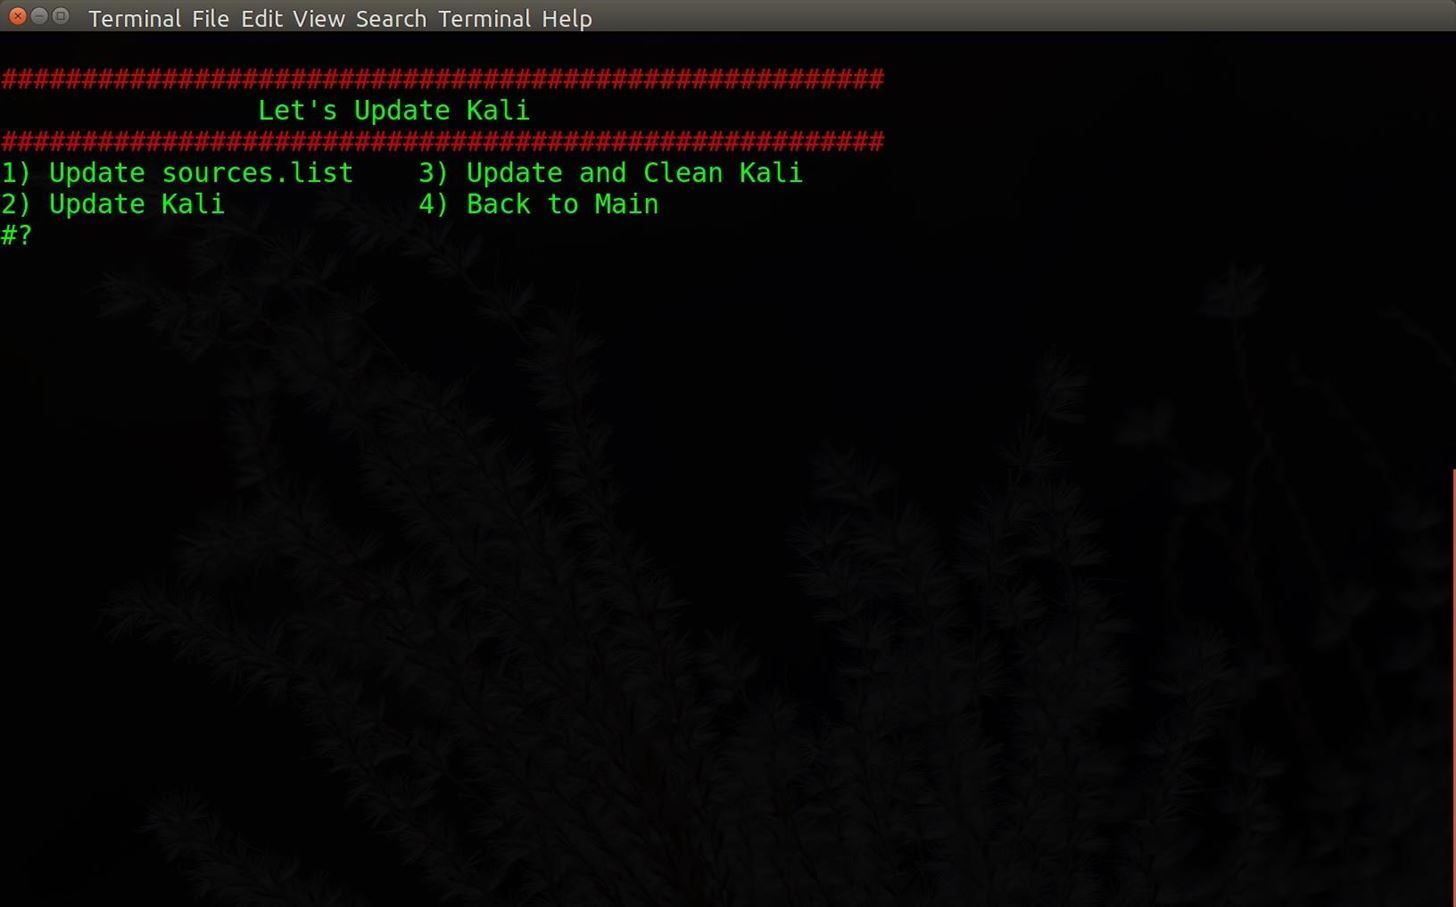 DDos 4.0 the Best Script for Kali Linux Rolling